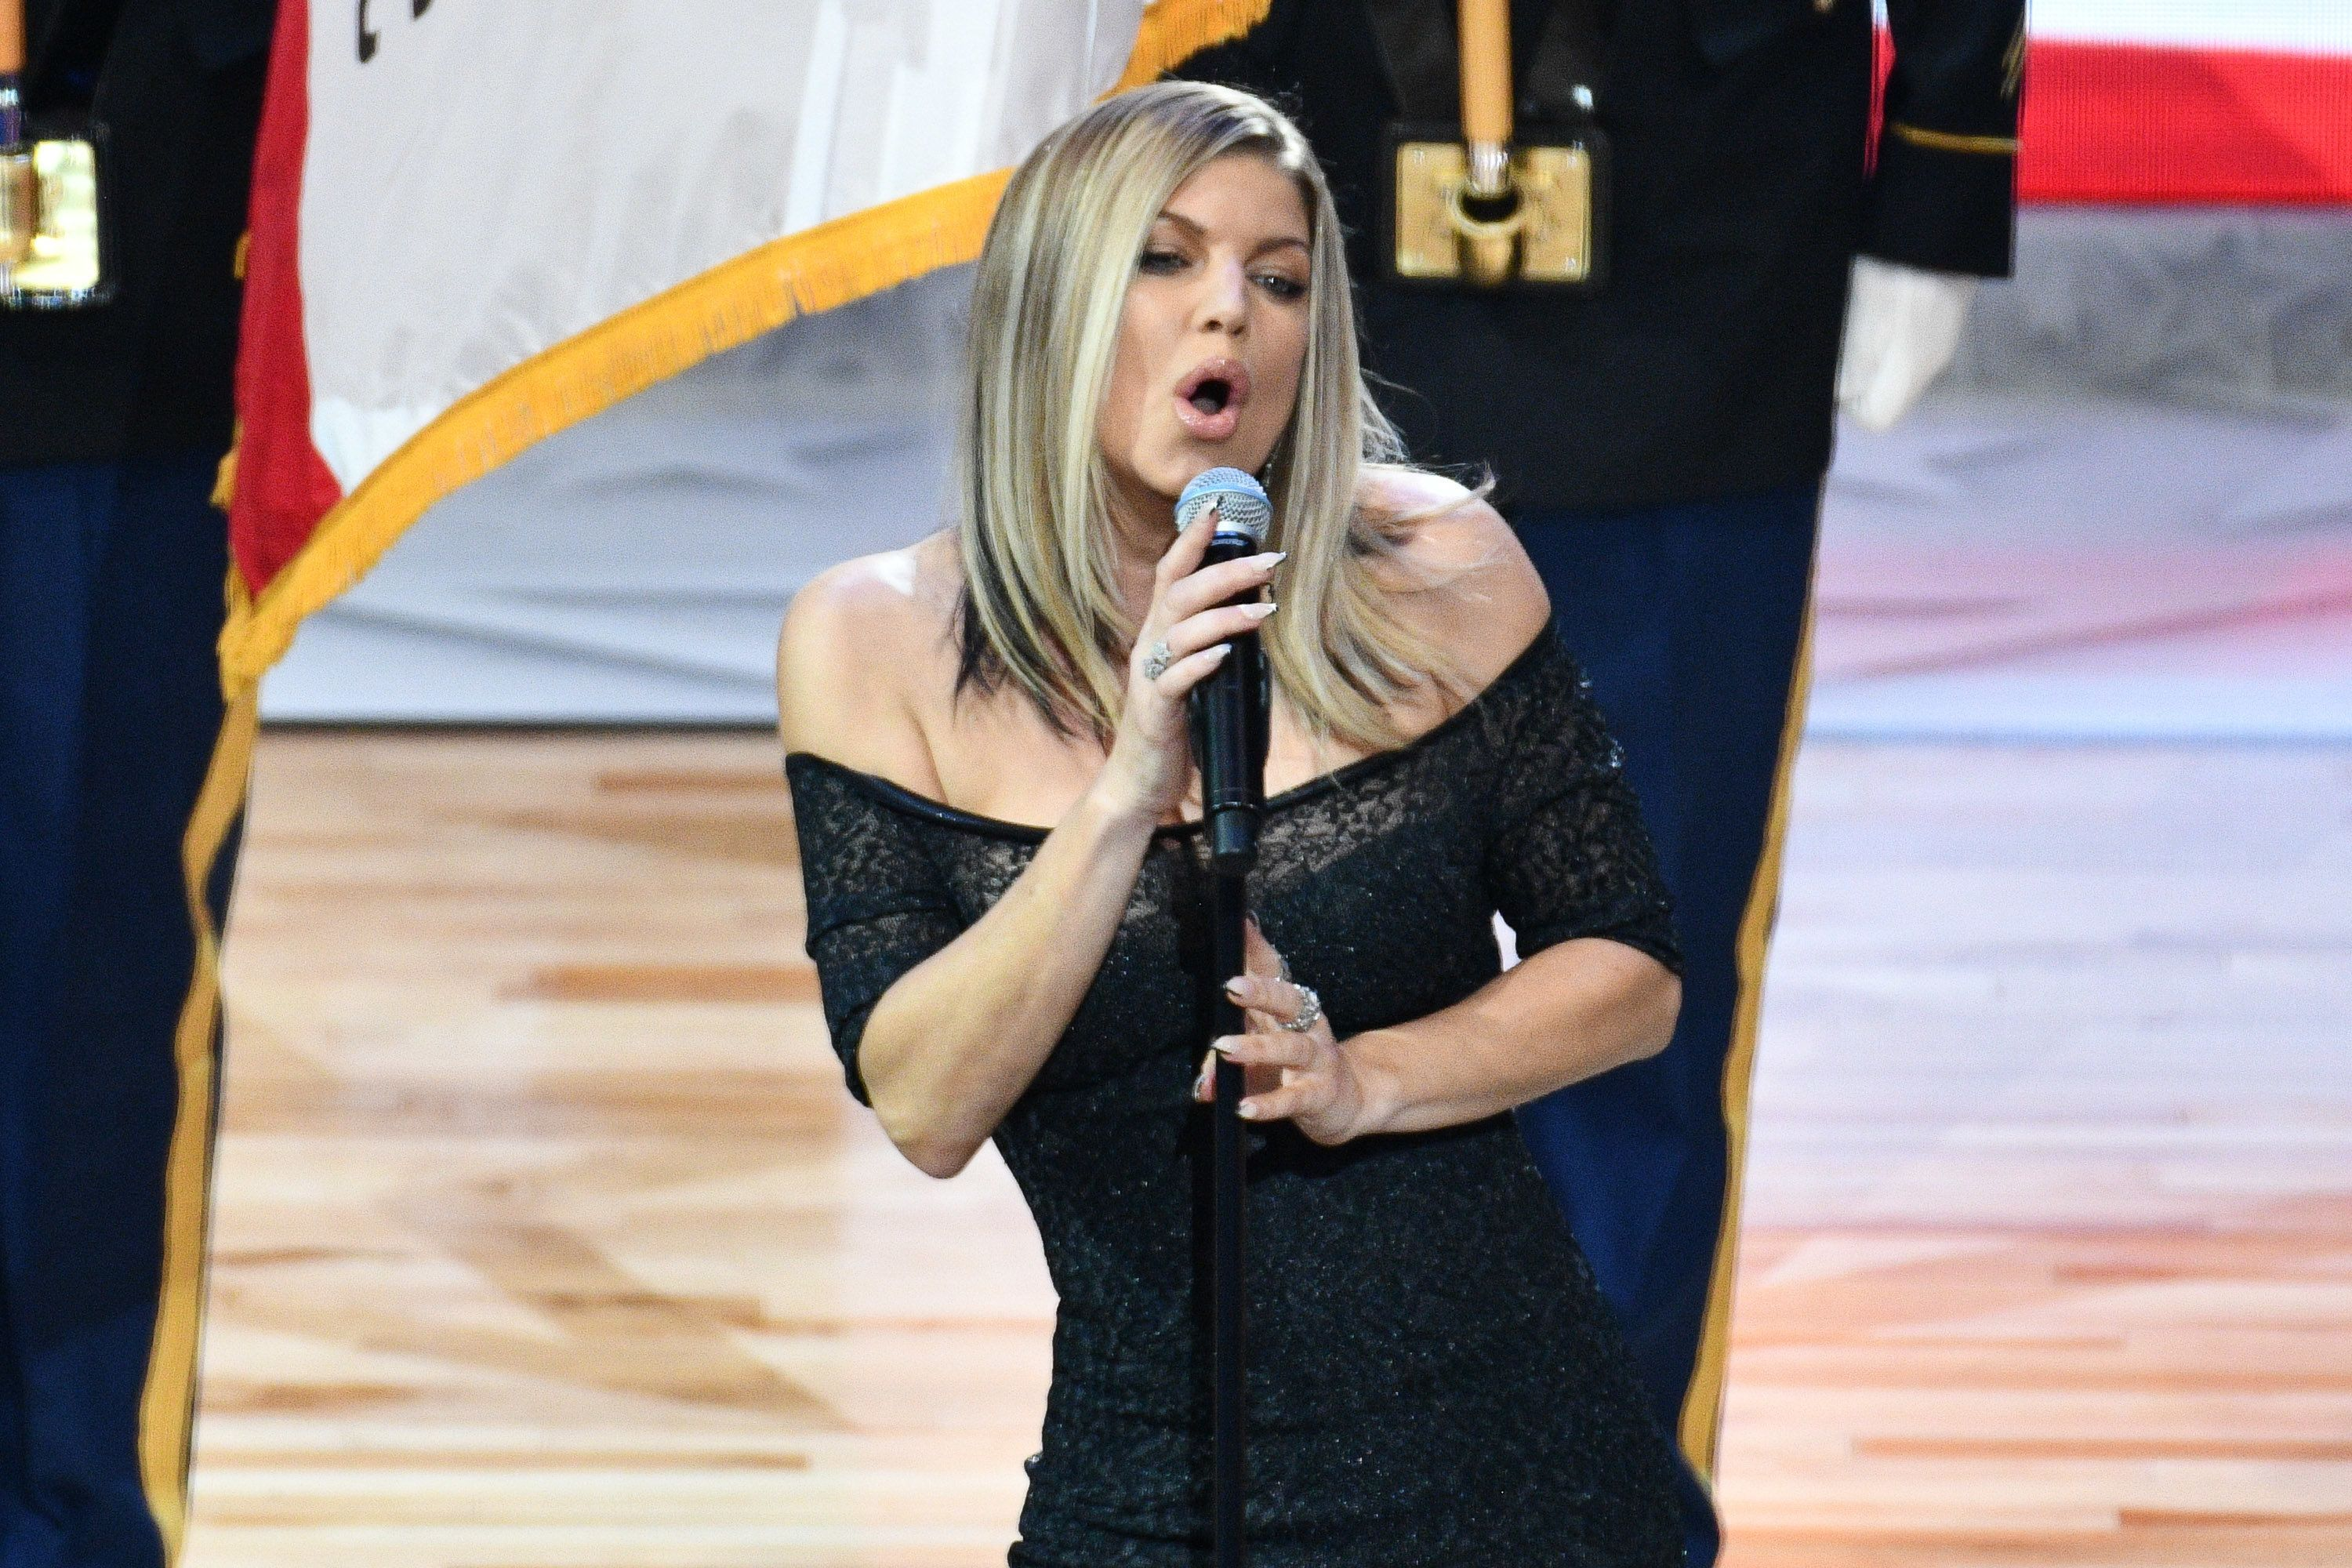 Fergie Apologizes For National Anthem, Saying She 'Tried Her Best'